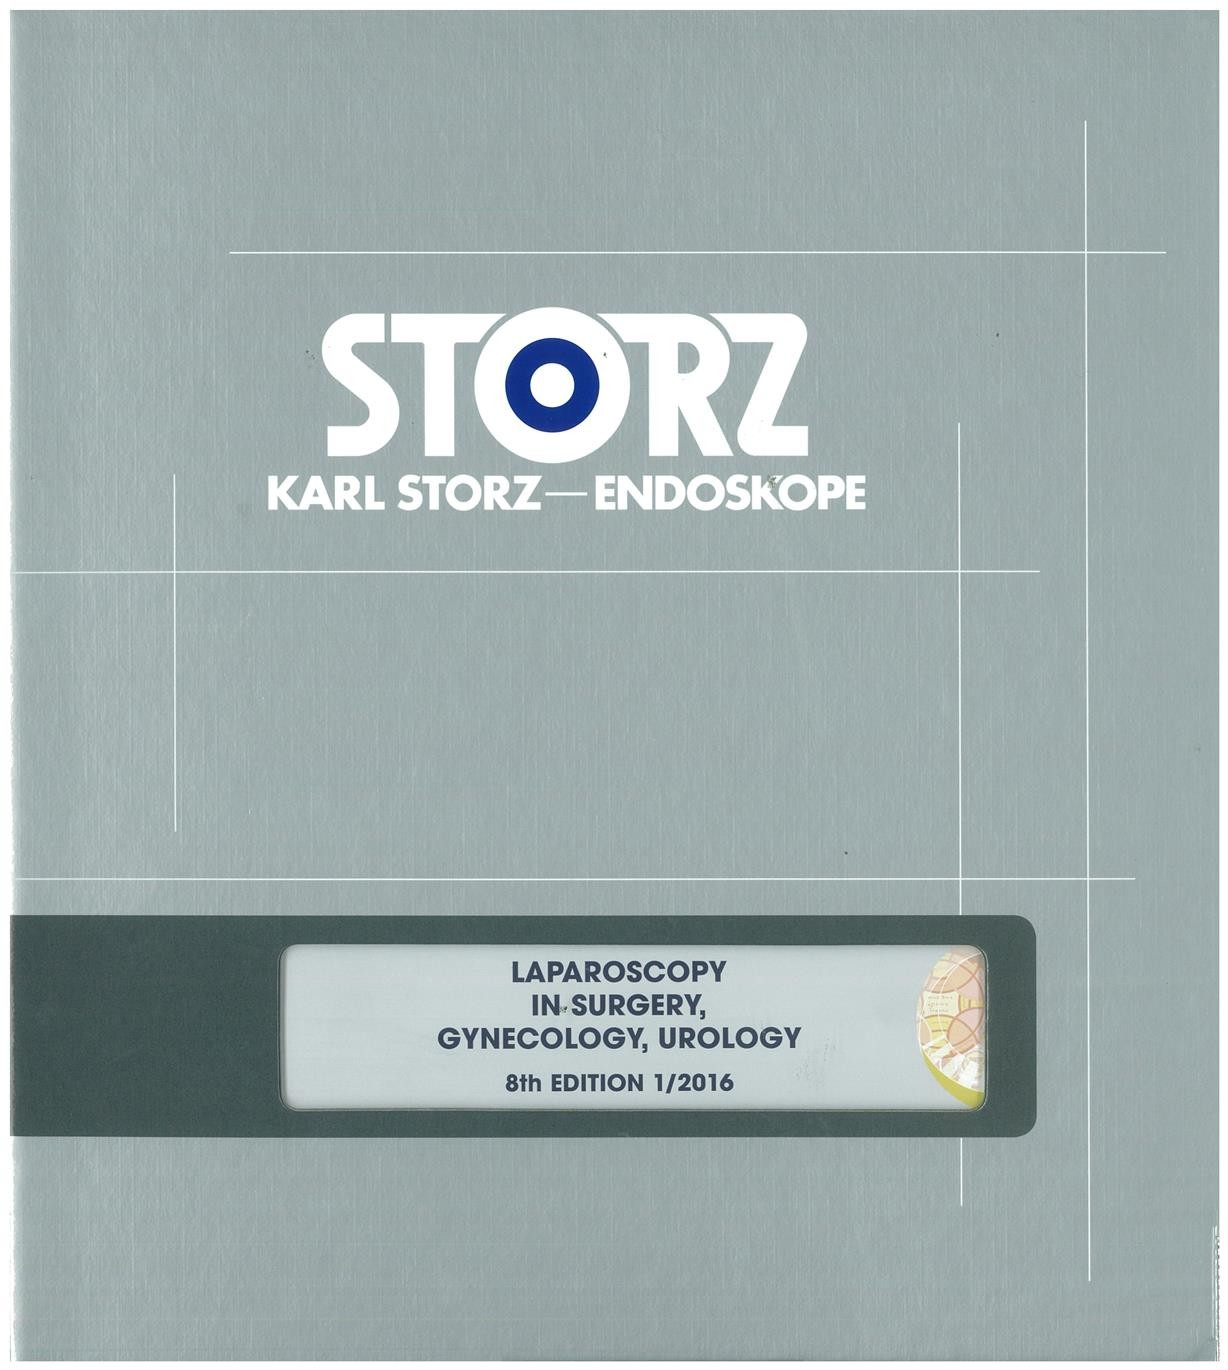 NEW Karl Storz Laparoscopy Catalogue